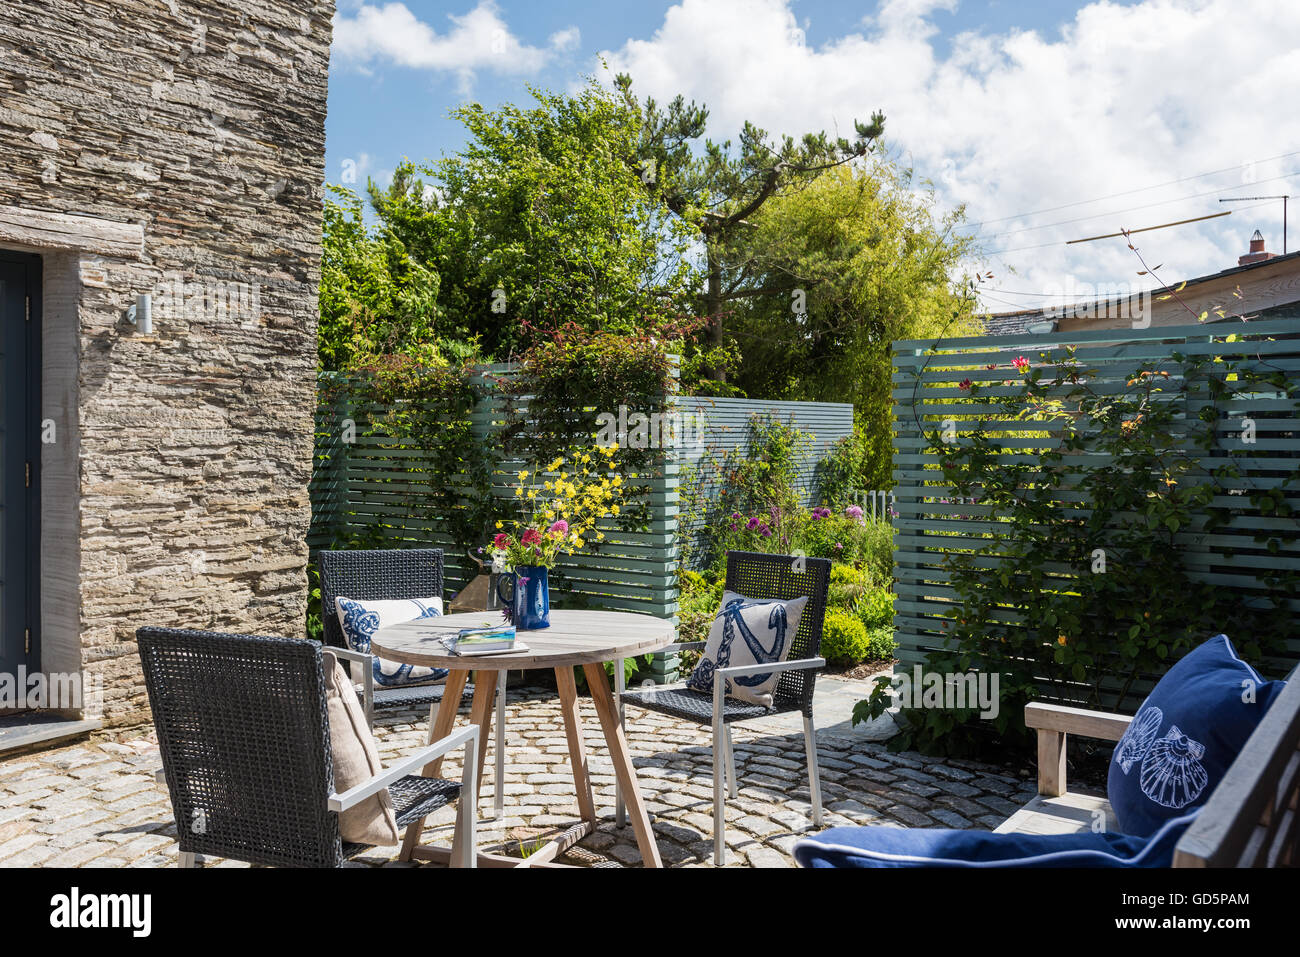 Garden furniture in cottage courtyard with circular brick paver patio - Stock Image